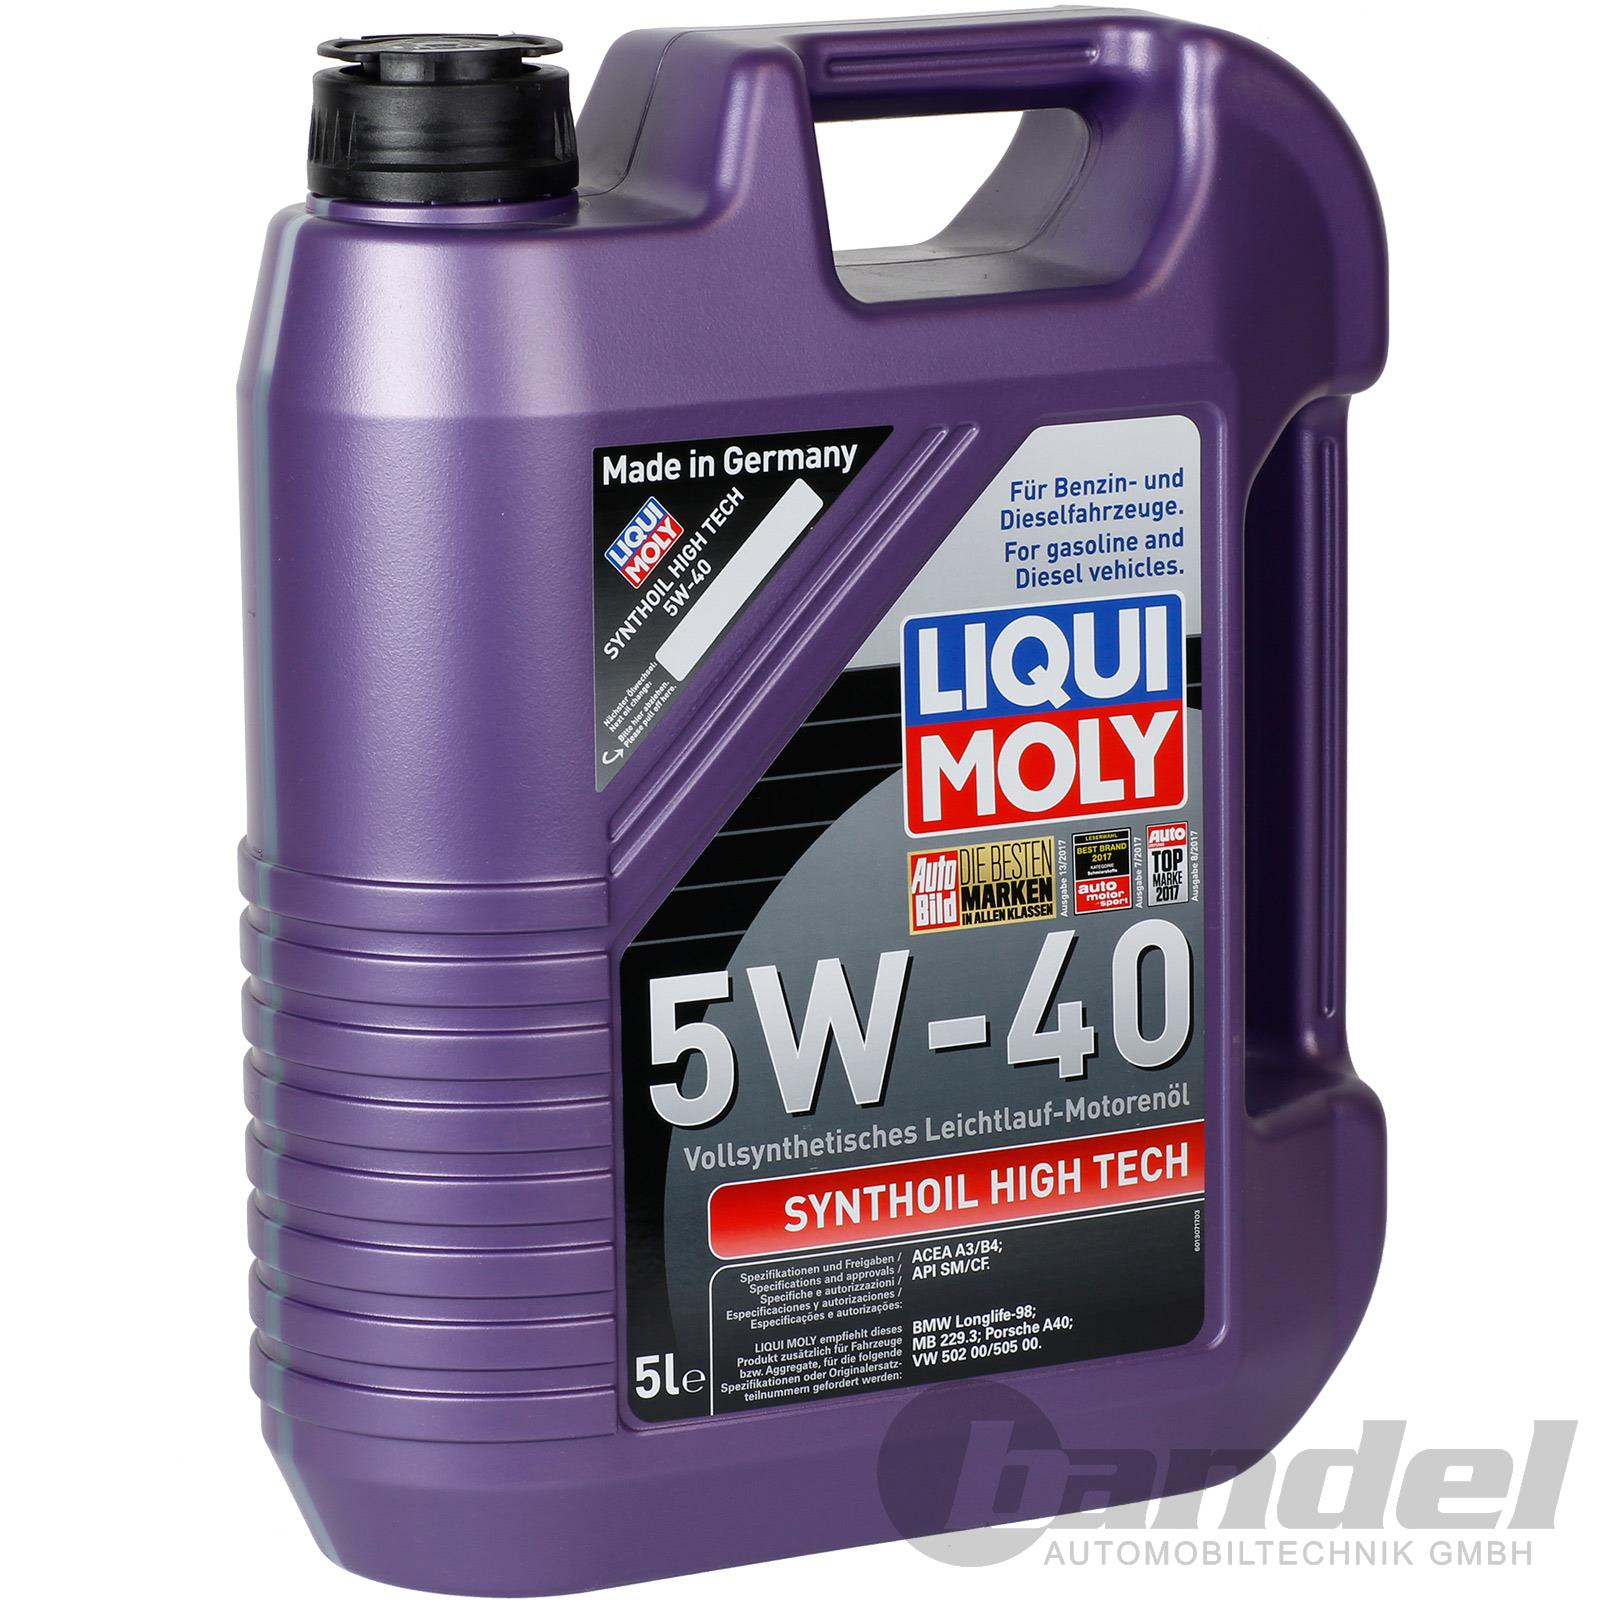 8 40 l 5 liter motor l liqui moly 1307 synthoil high. Black Bedroom Furniture Sets. Home Design Ideas